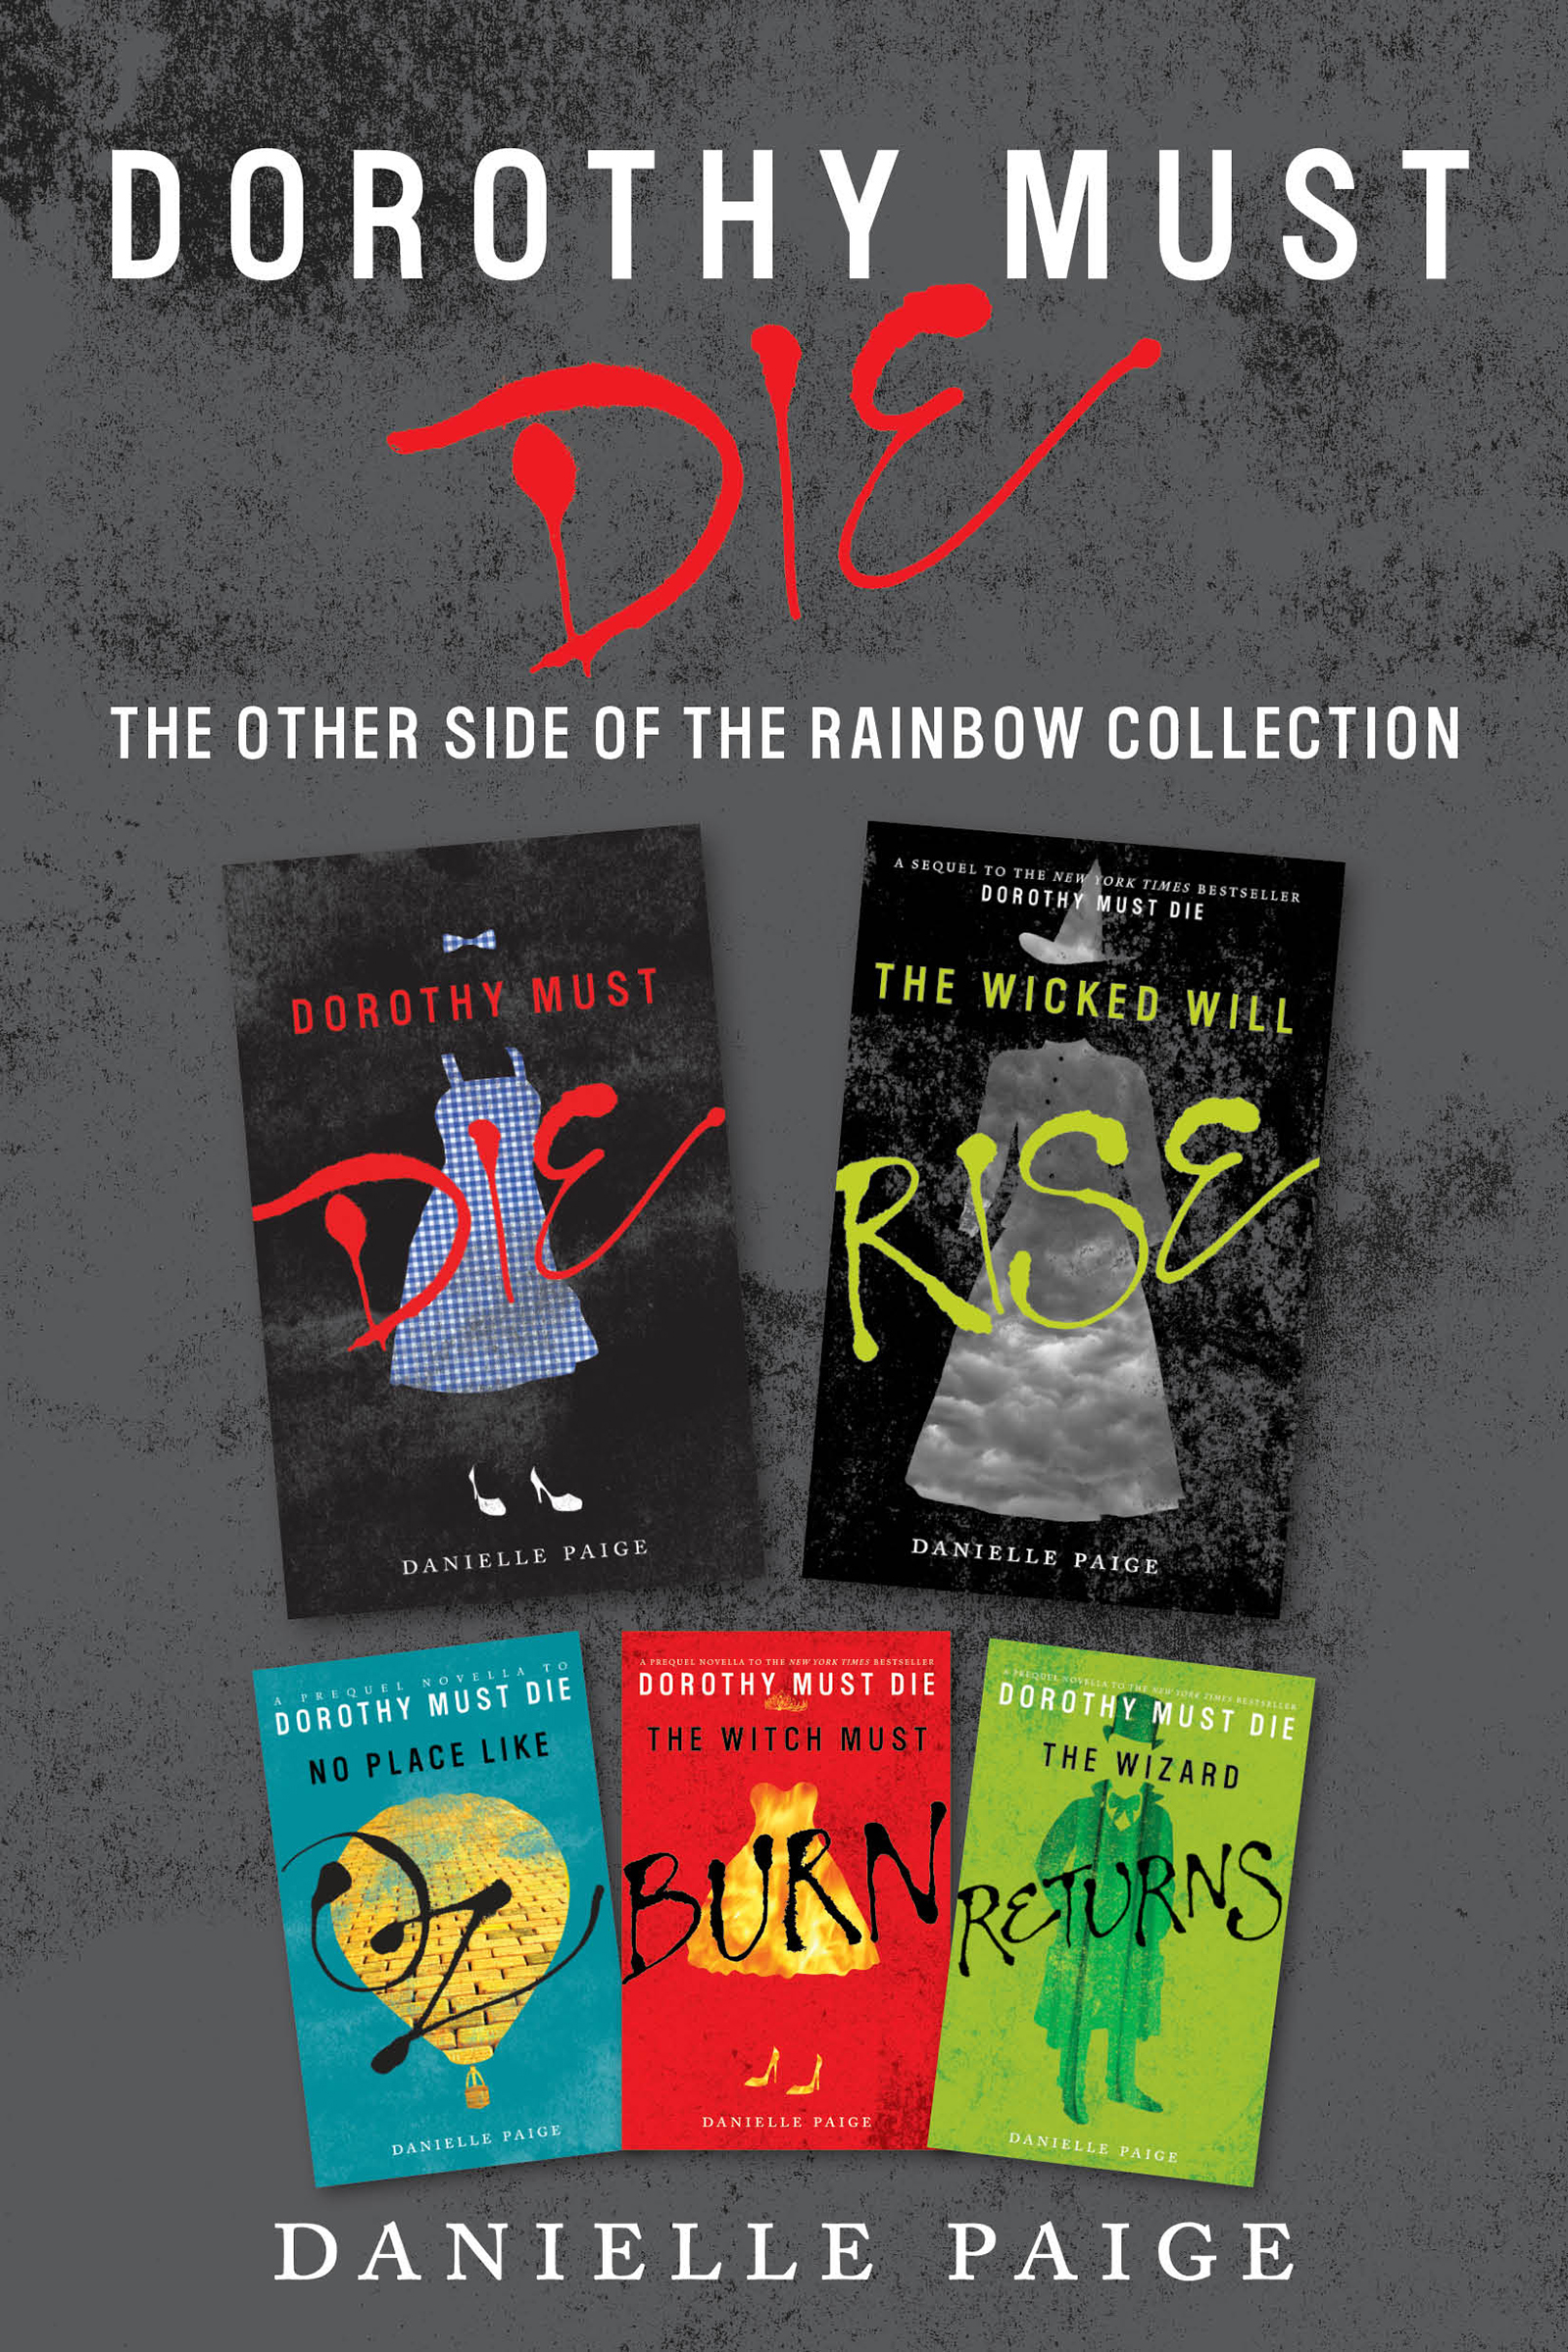 Dorothy Must Die: The Other Side of the Rainbow Collection No Place Like Oz, Dorothy Must Die, The Witch Must Burn, The Wizard Returns, The Wicked Will Rise